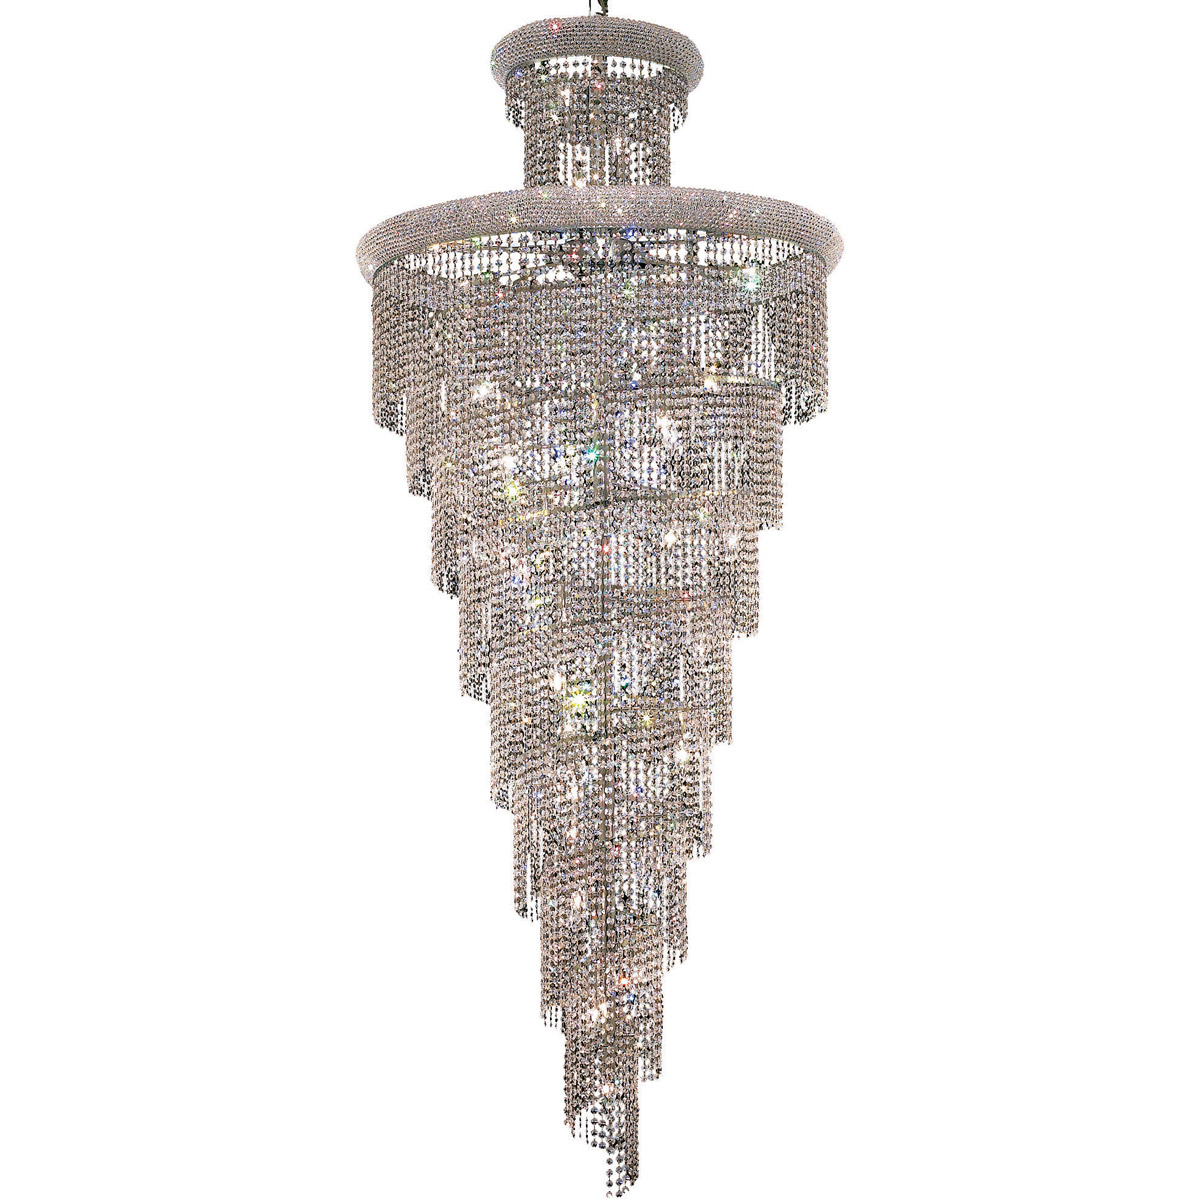 Details About Asfour Crystal Chandelier Spiral Modern Quality Lighting Fixtures 32 Light 86